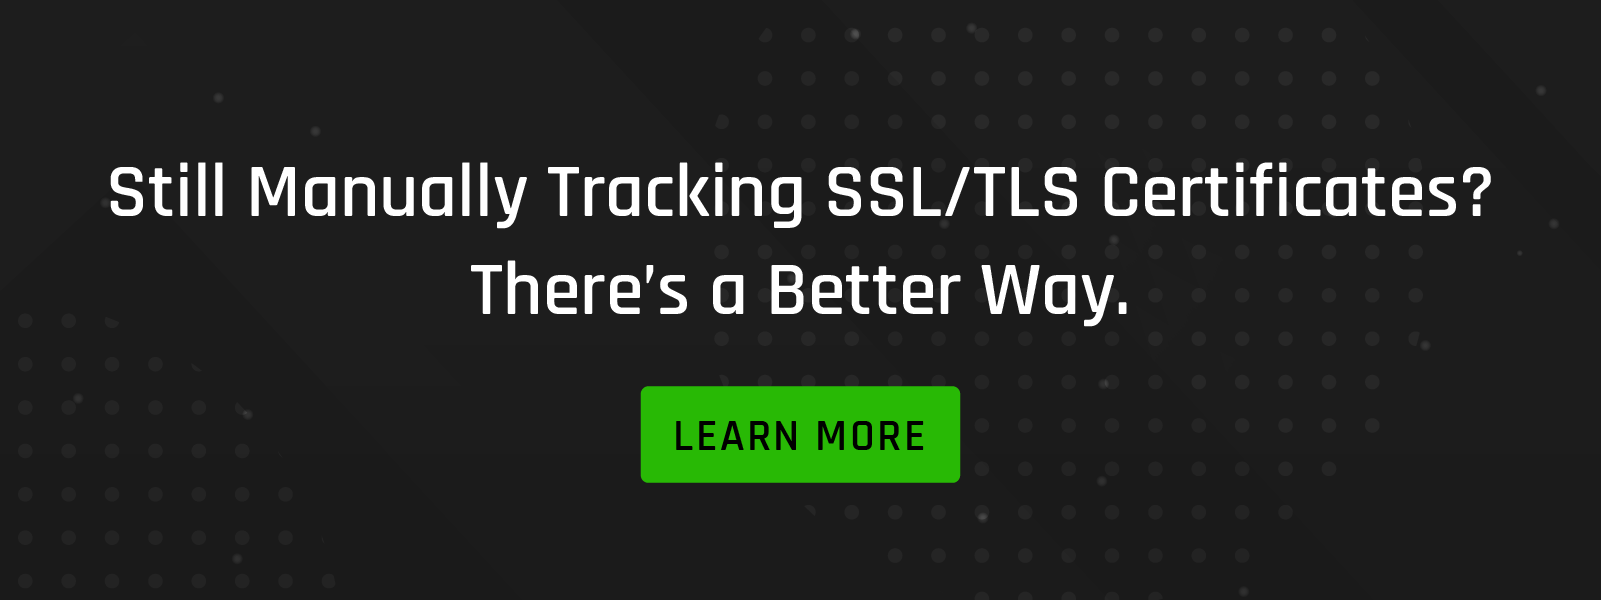 Automate Tracking of SSL/TLS Certificates Link